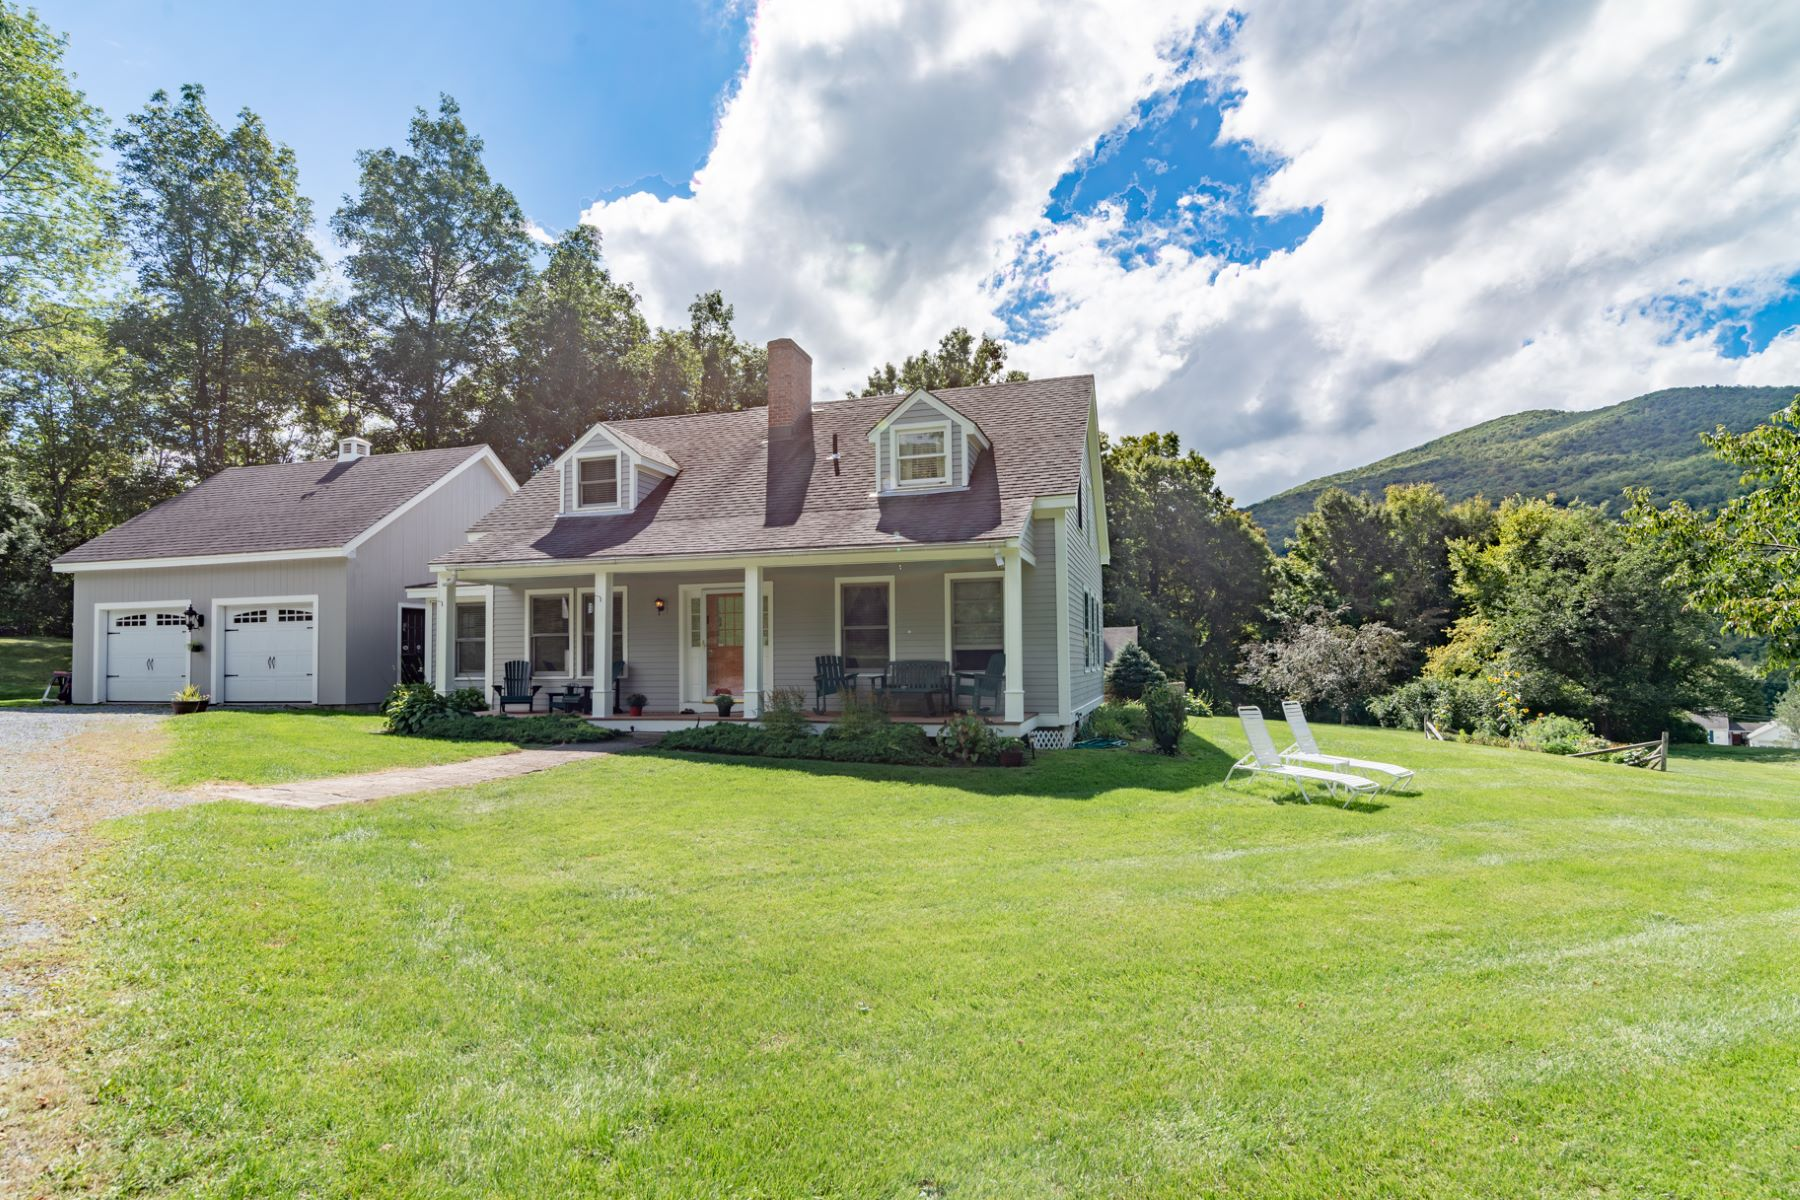 Single Family Homes for Sale at Custom Built Post and Beam 68 Rabbit Run Arlington, Vermont 05250 United States